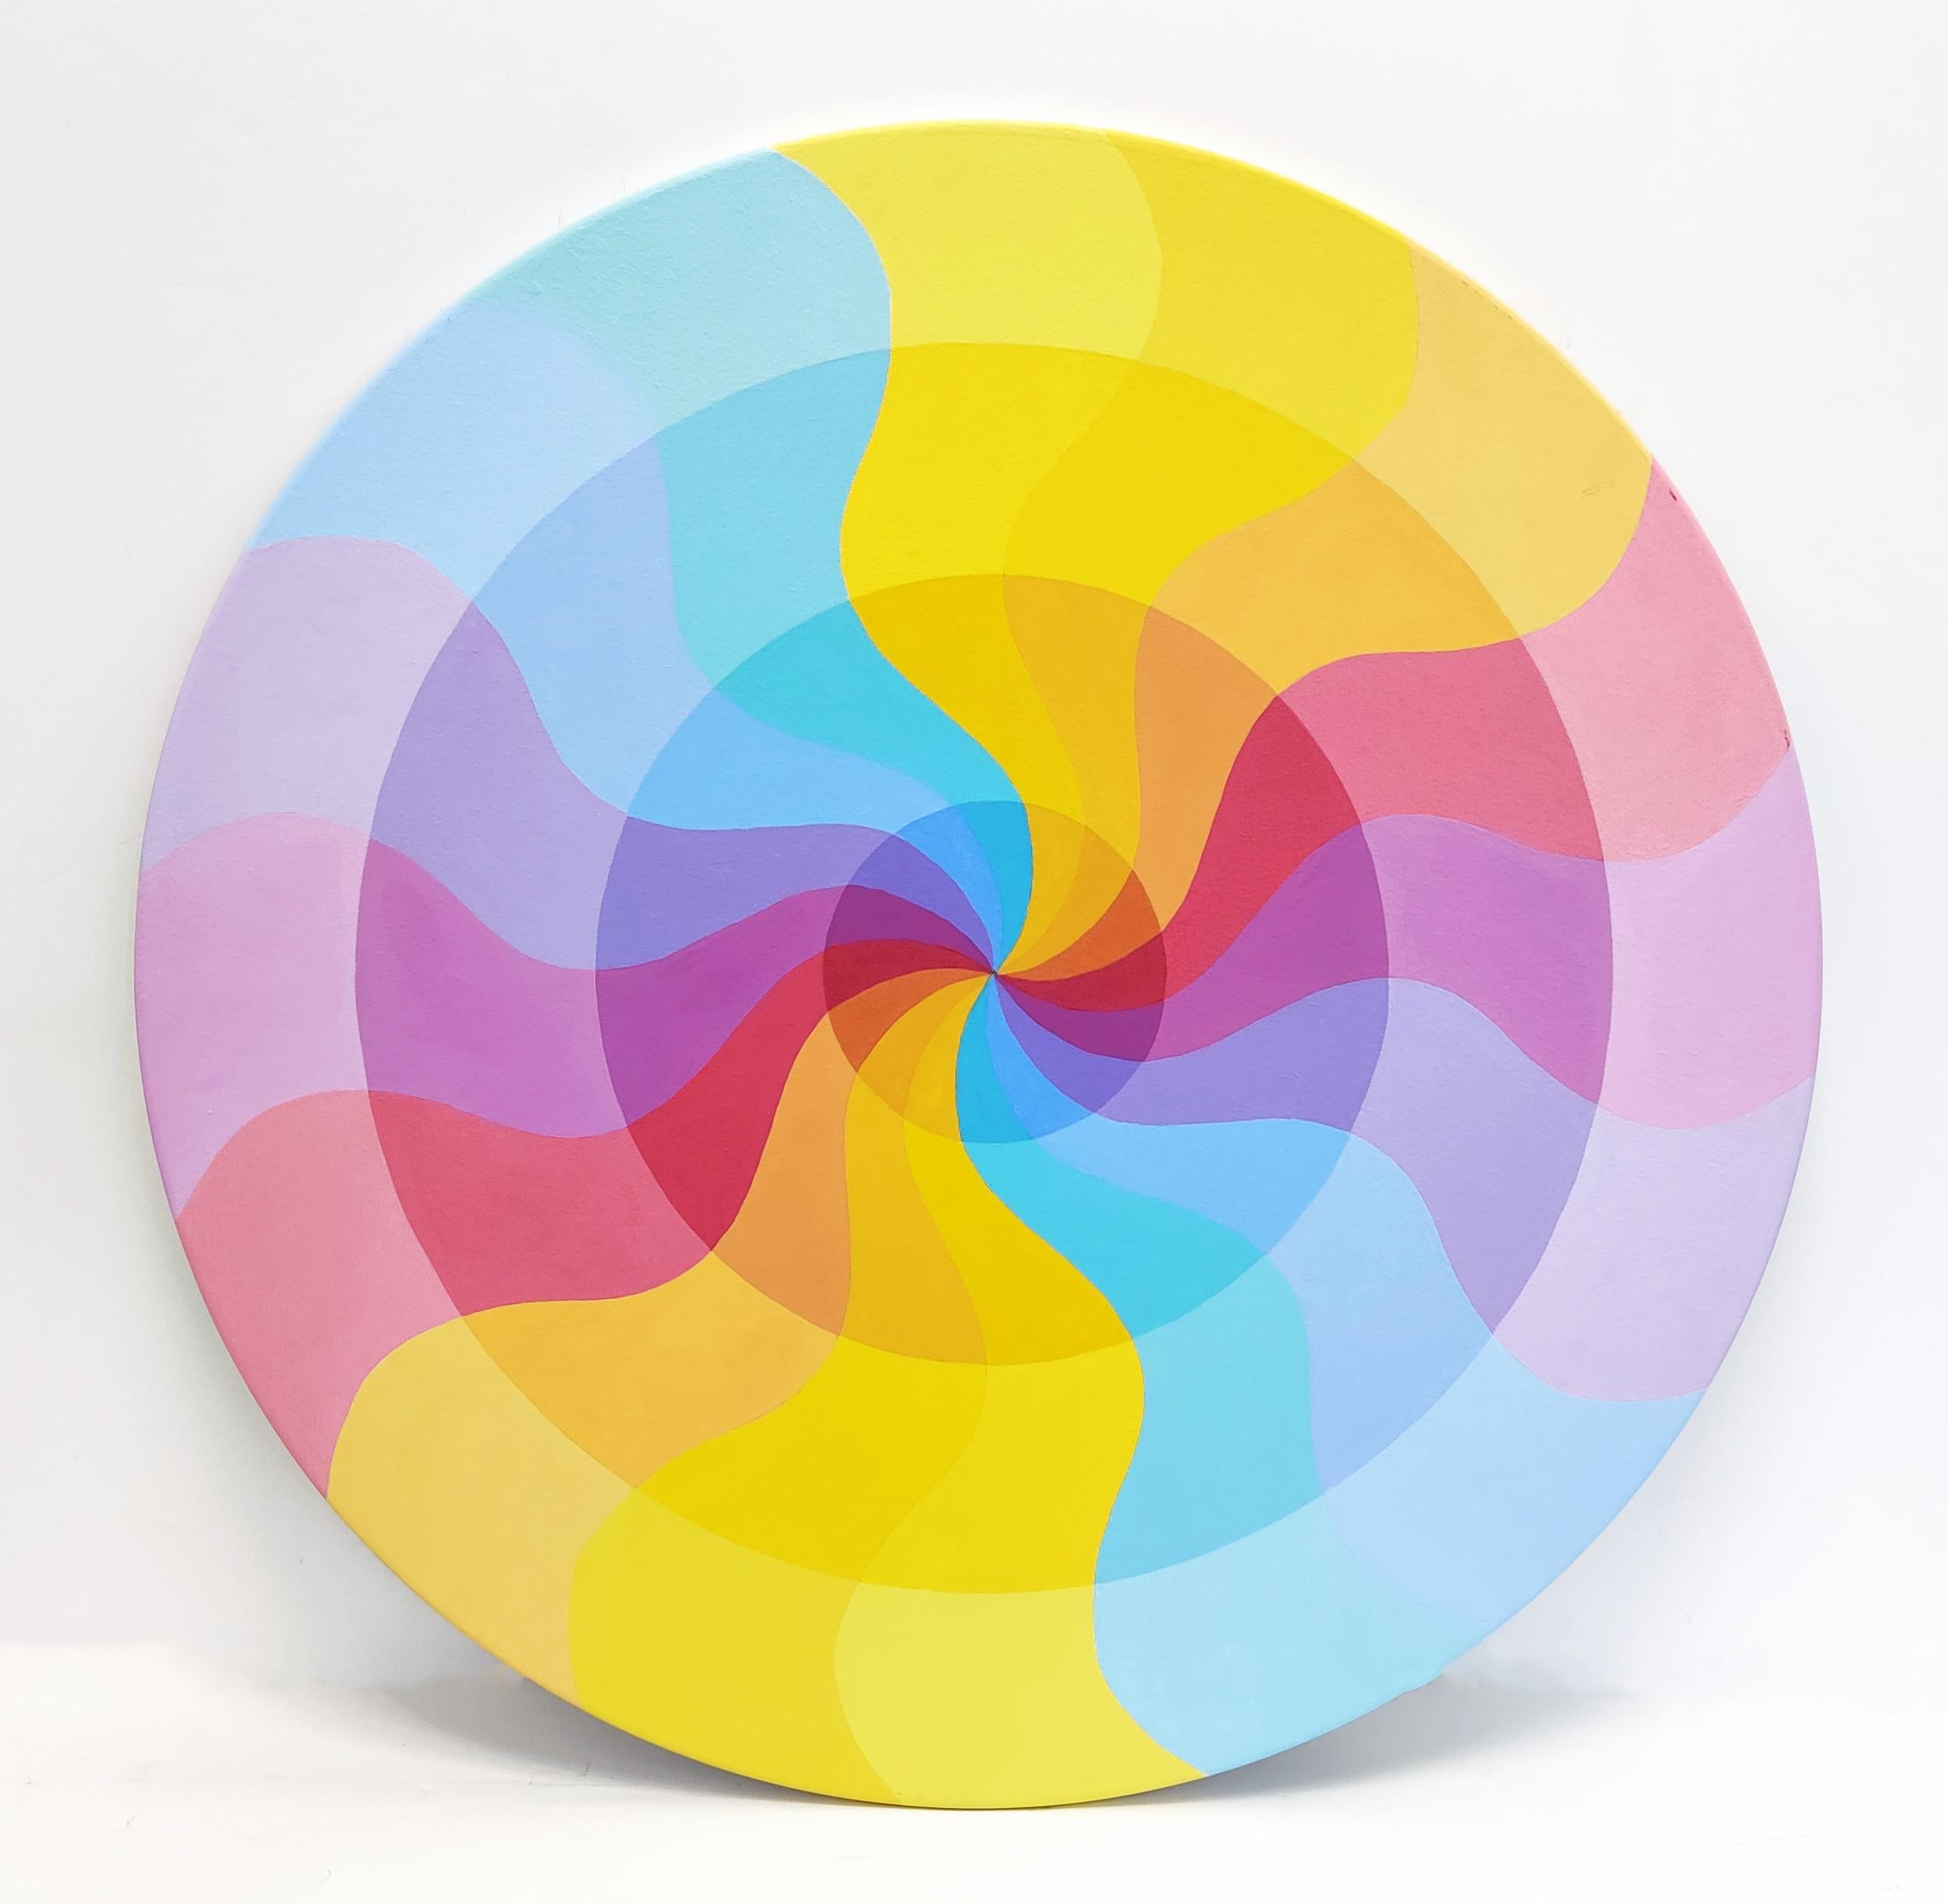 CURVES (CIRCULAR PAINTING ON WOOD)